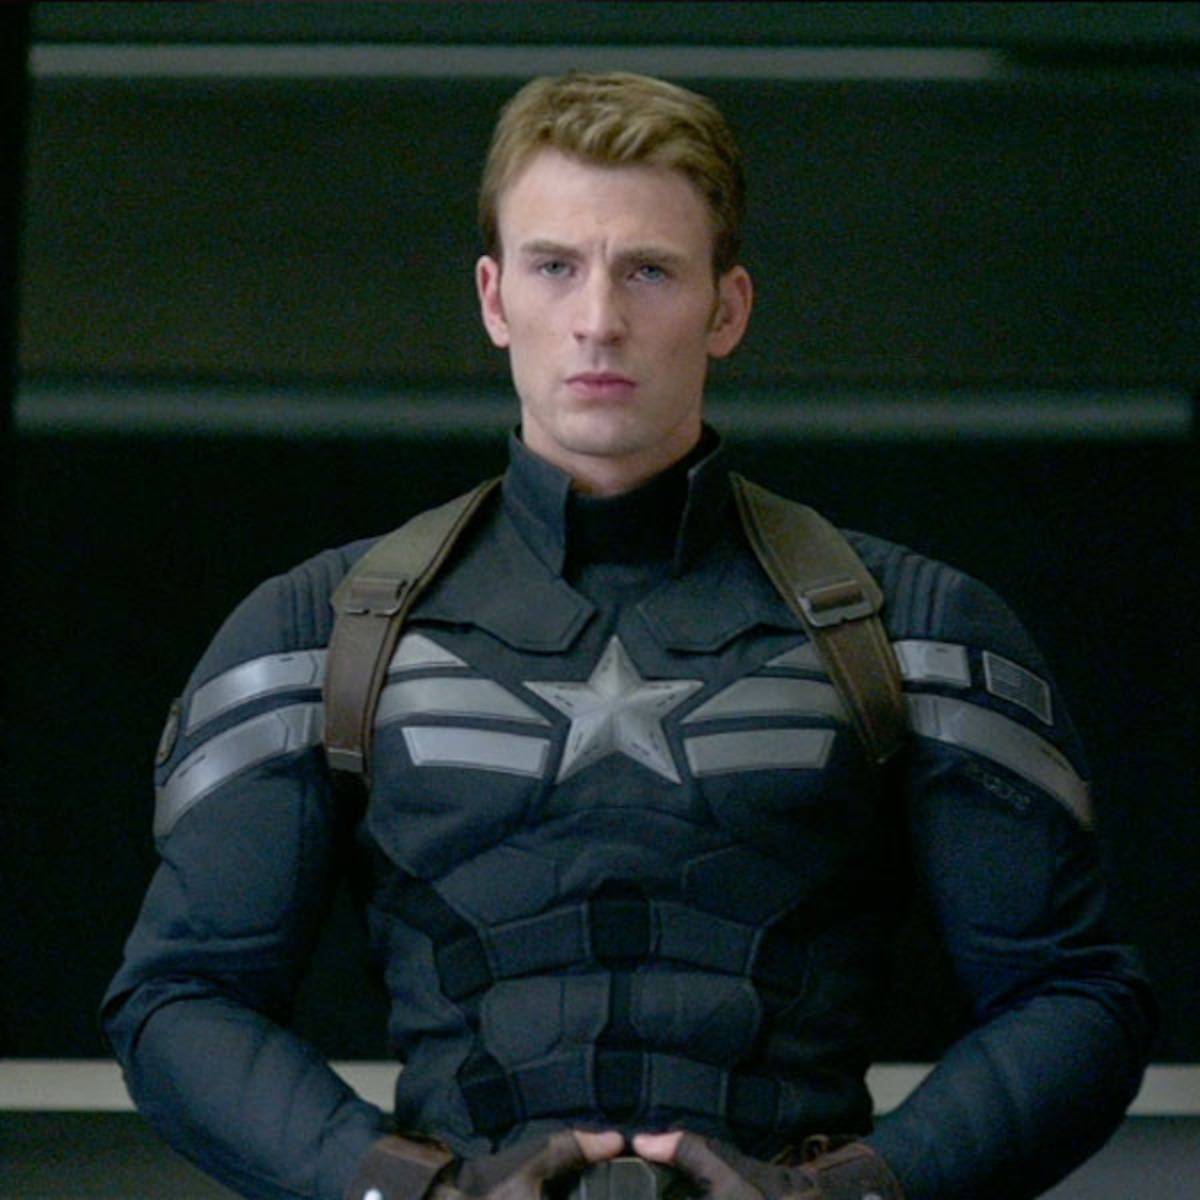 Captain America And All Of The Men Of Marvel Shirtless And Ranked By Hotness